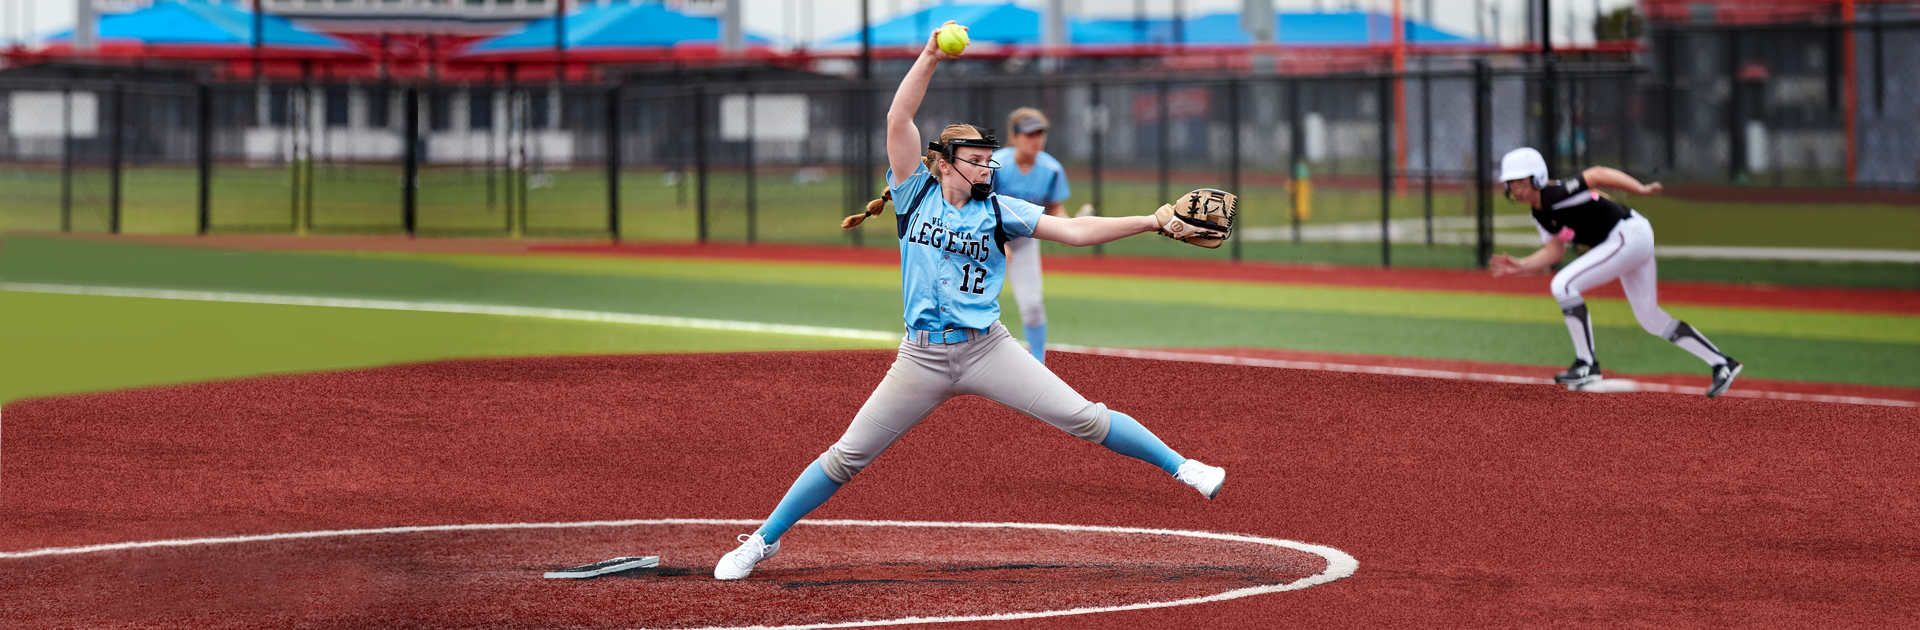 Woman in the middle of pitching a softball